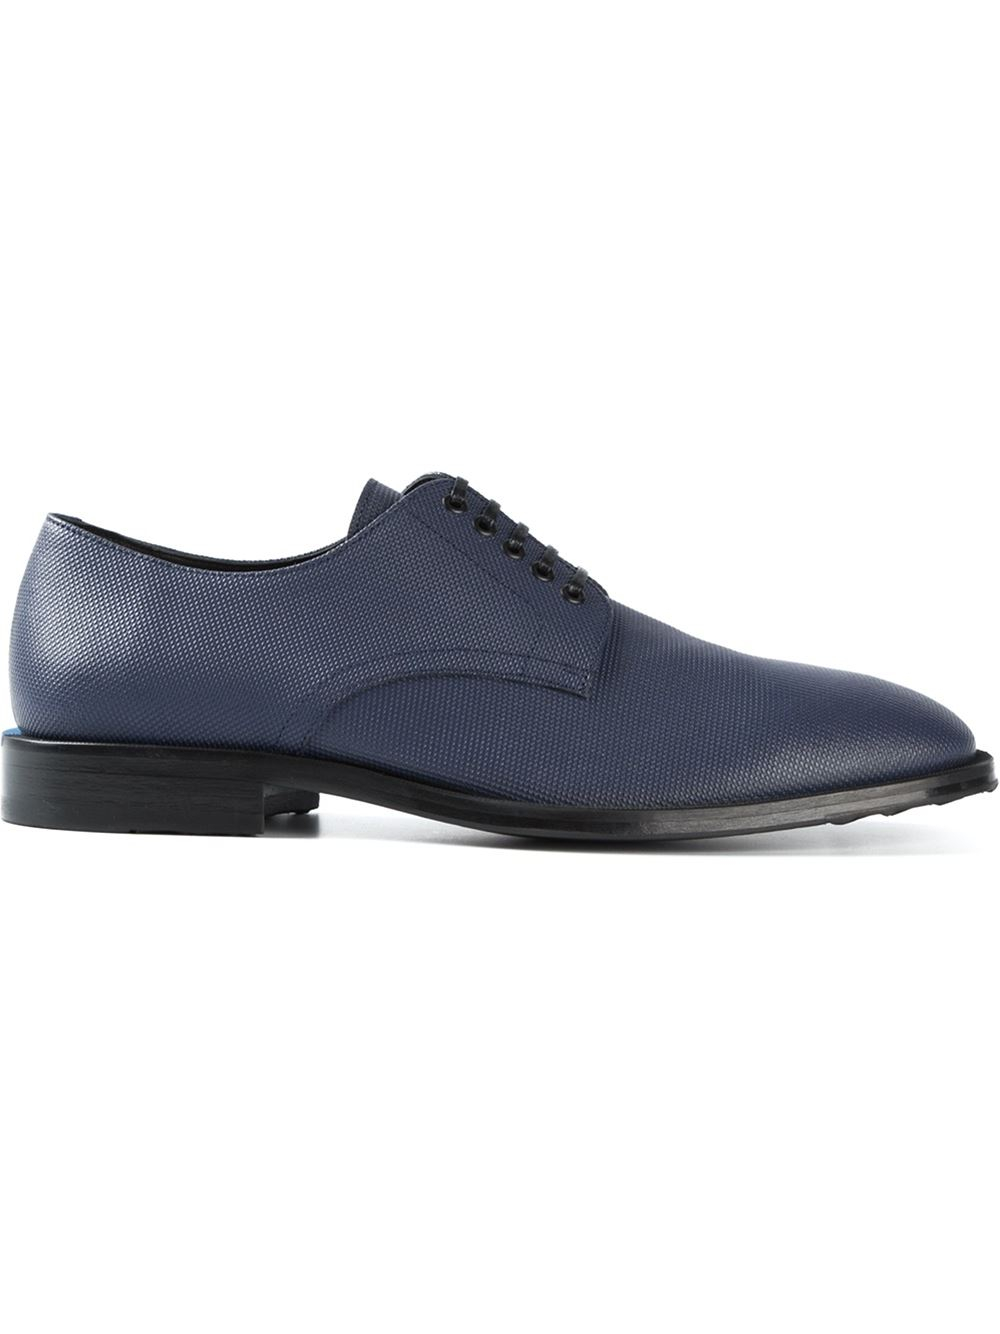 Kenzo Gavyn Oxford Shoes In Blue For Men | Lyst